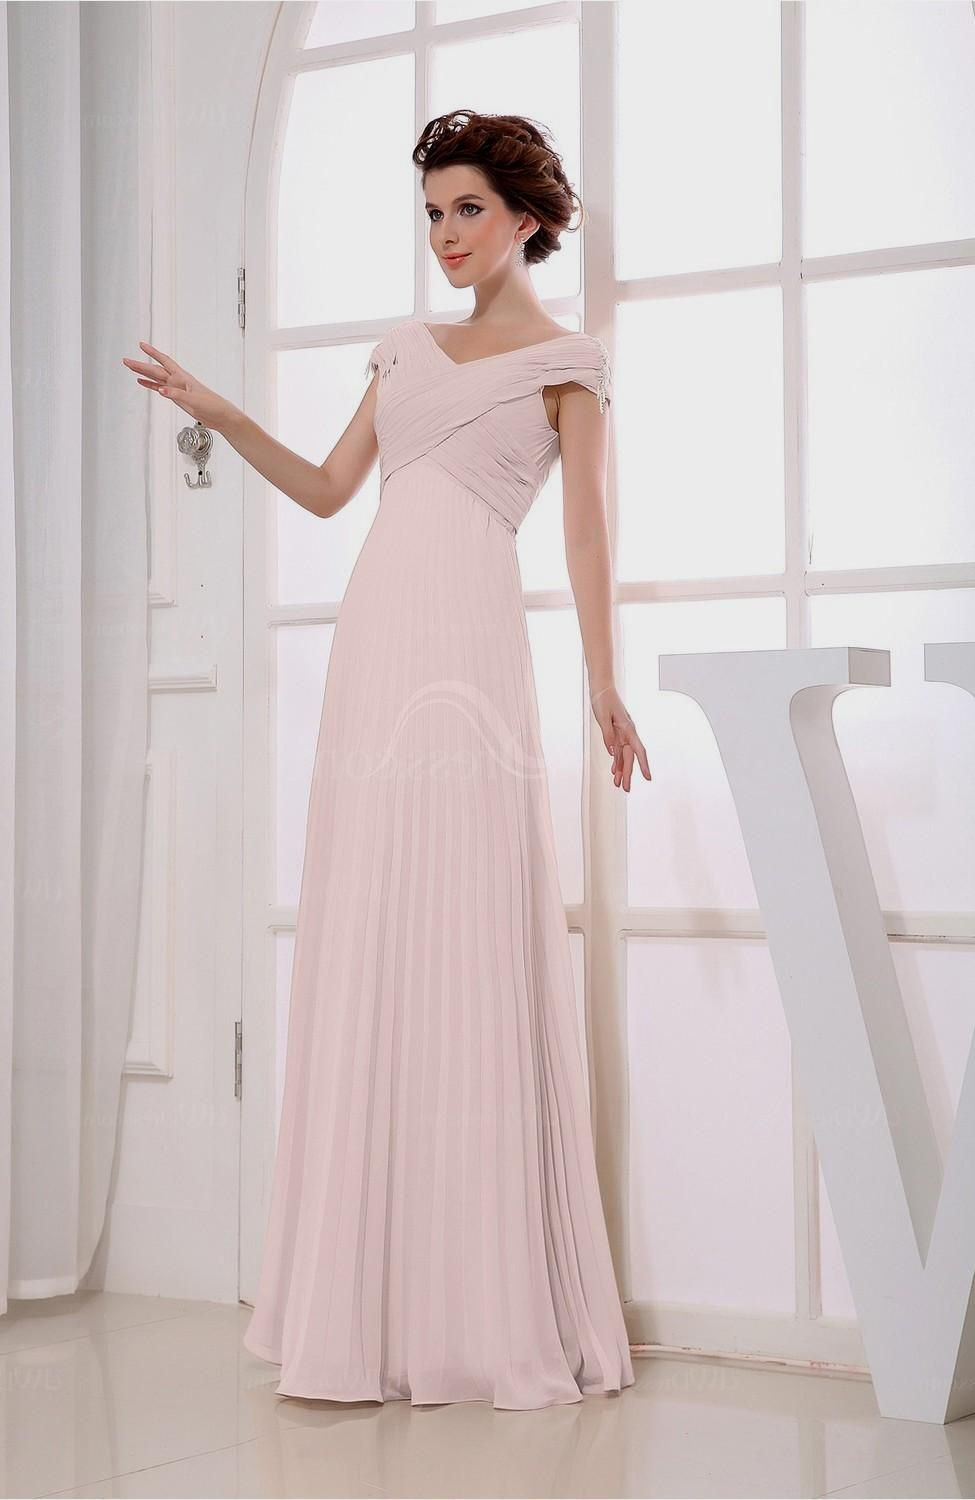 Light Pink Wedding Dresses Simple For Guests Check More At Http